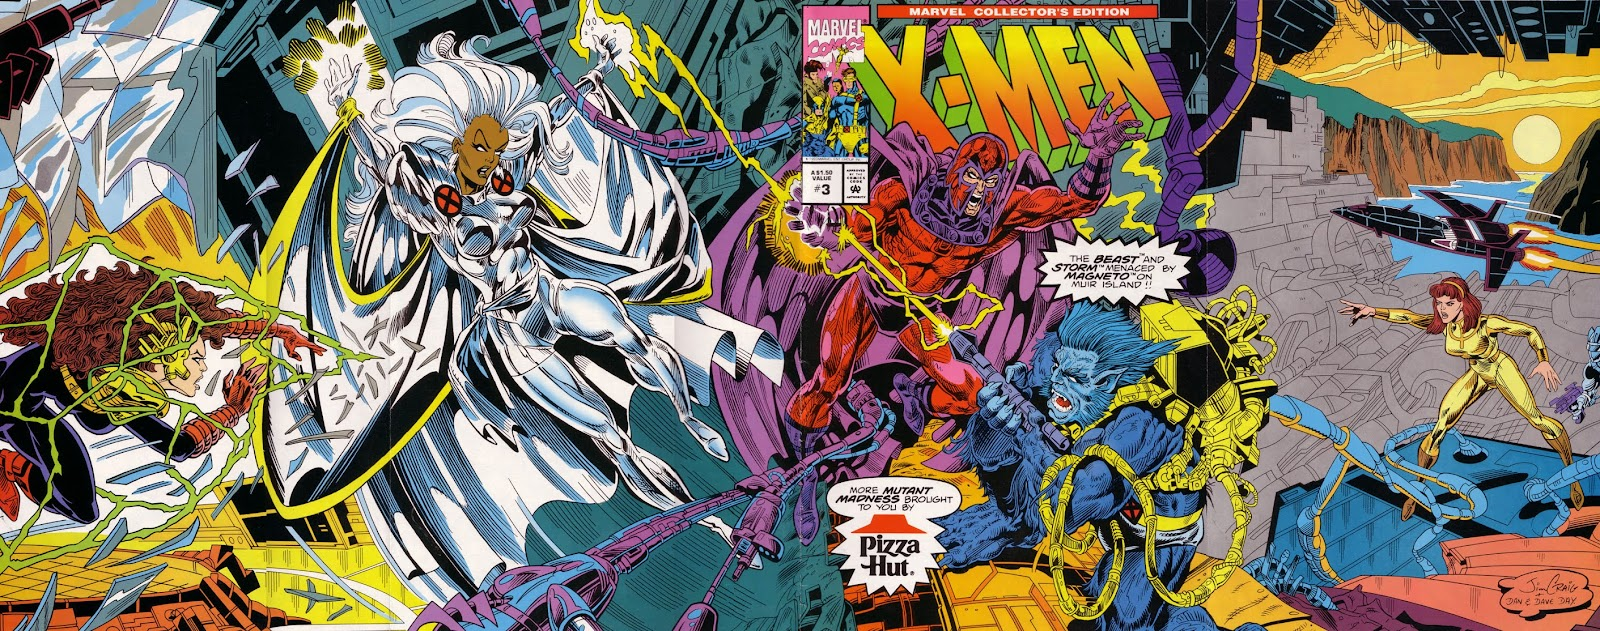 The X-Men Collectors Edition 3 Page 1